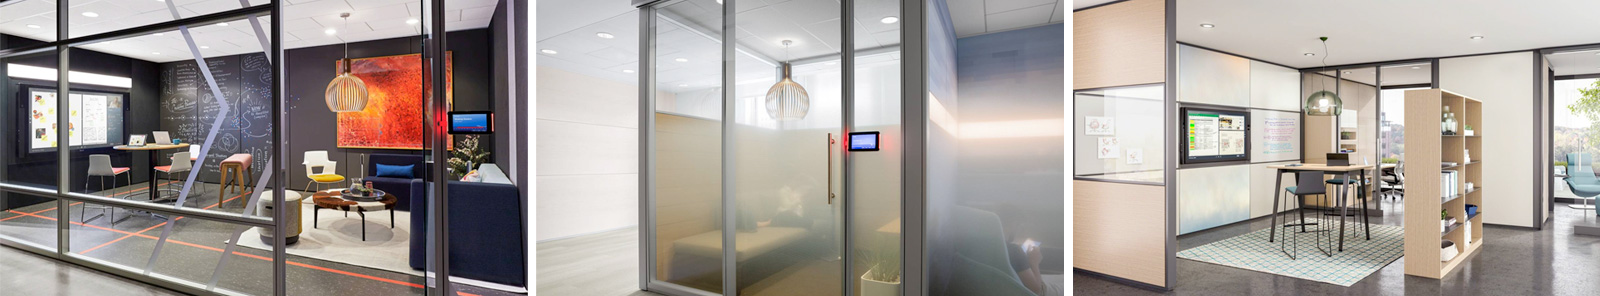 NBS Steelcase Media Walls Examples